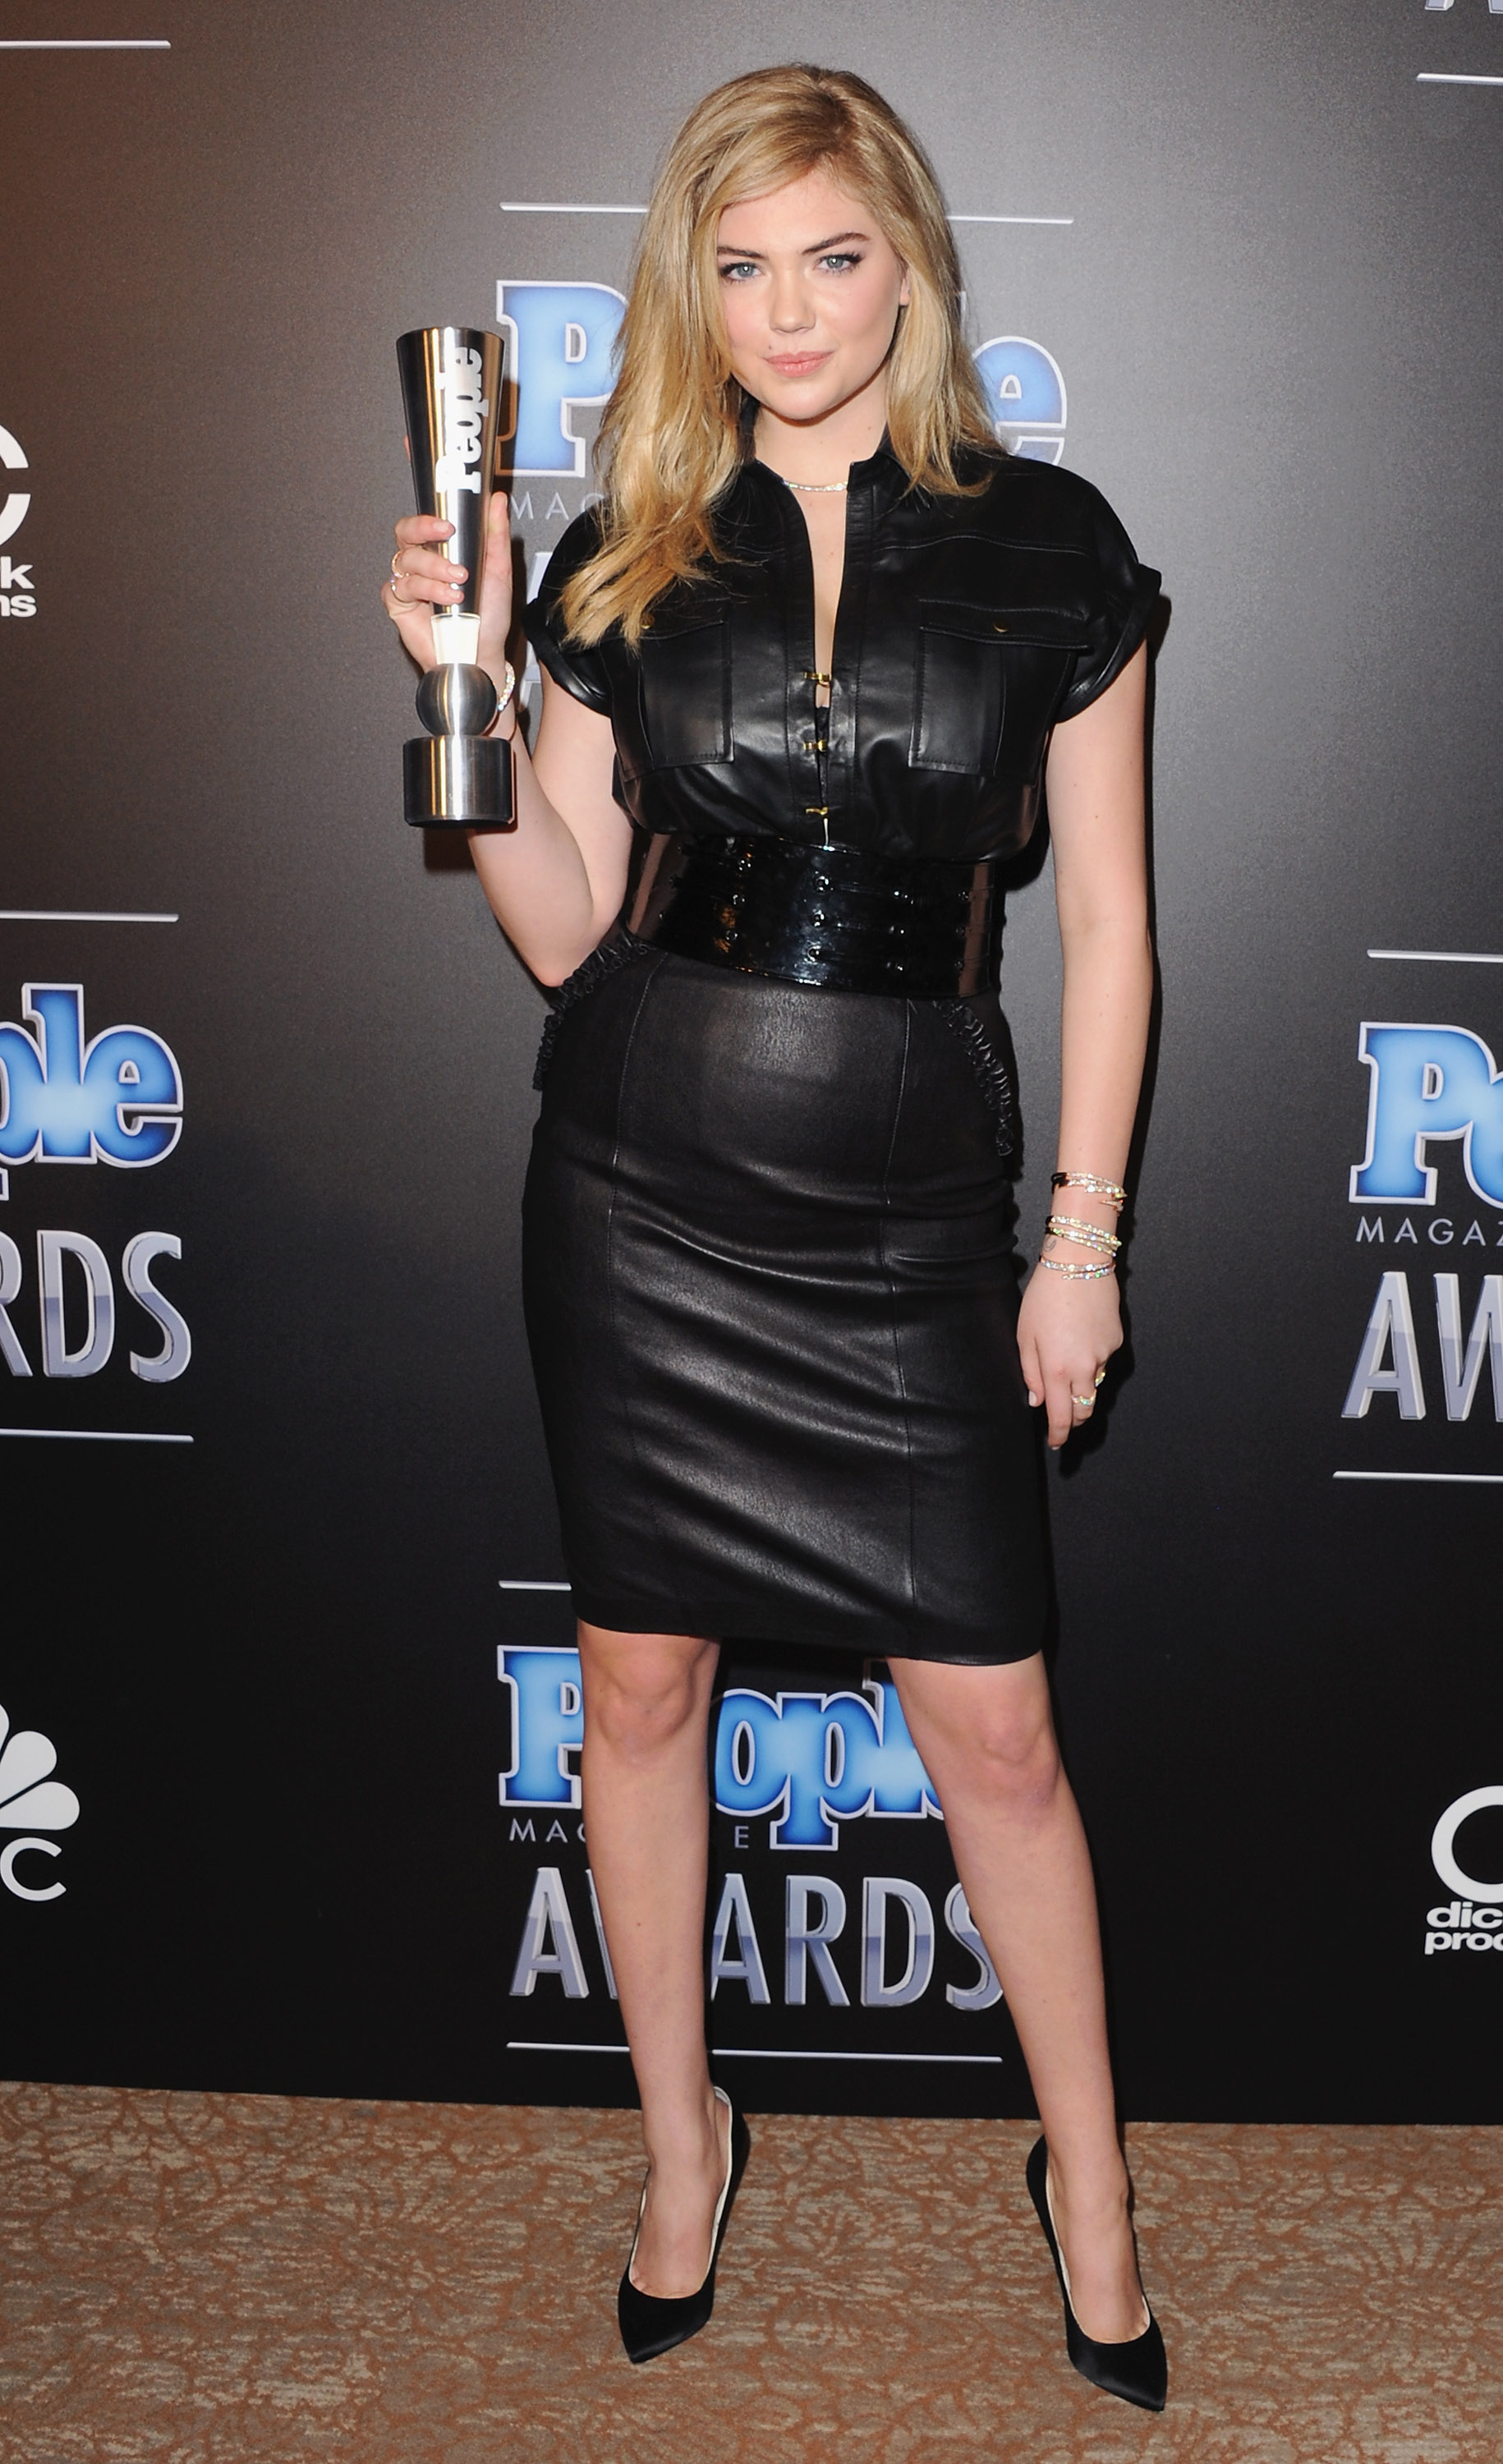 Kate Upton at The PEOPLE Magazine Awards on December 18, 2014.